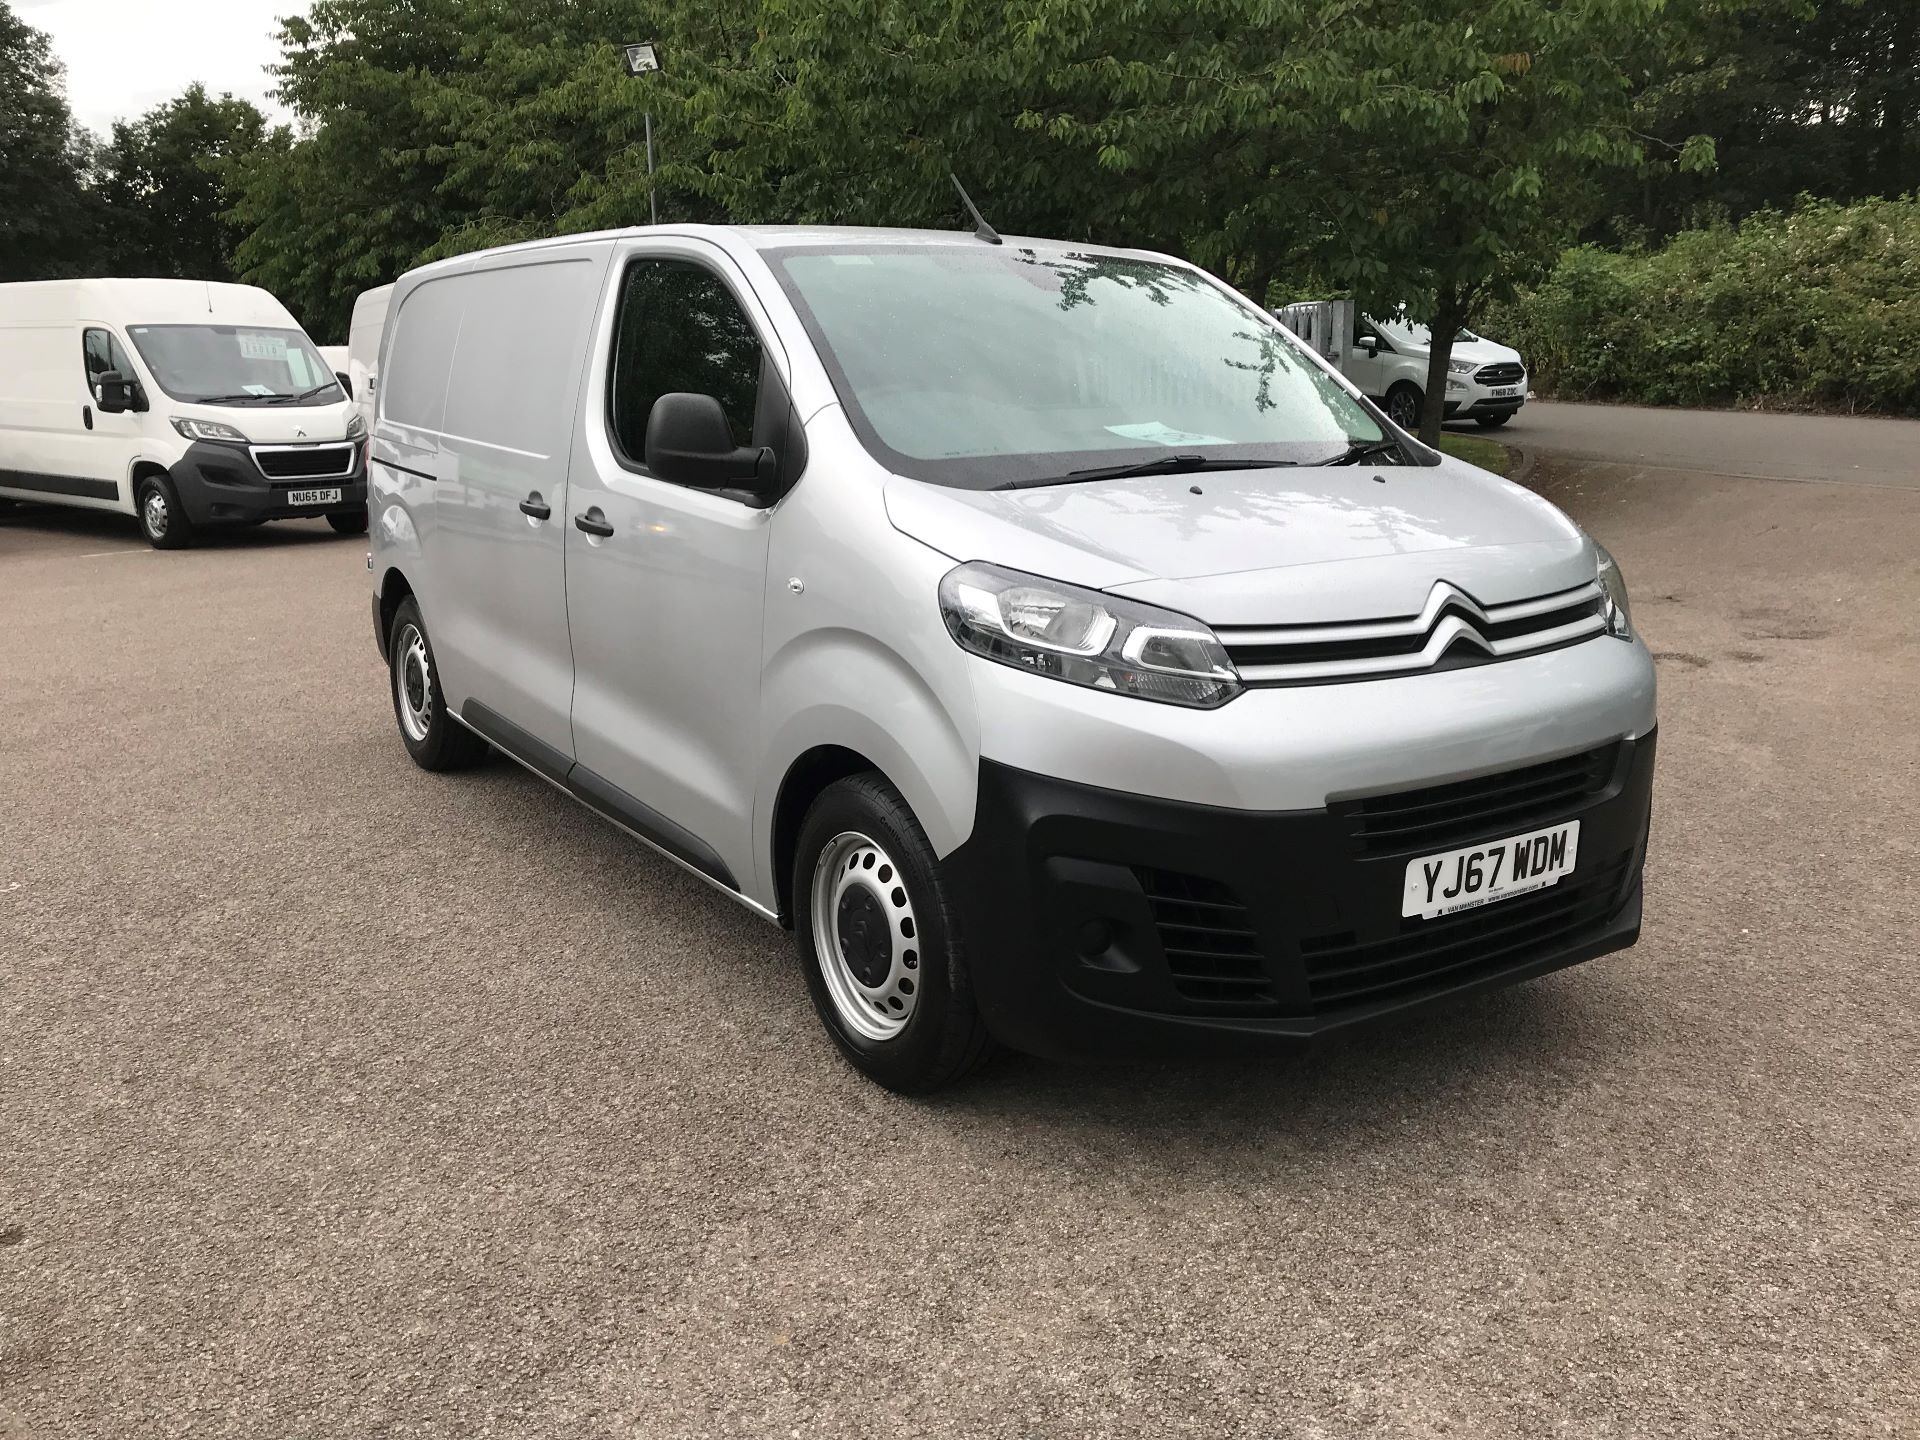 2017 Citroen Dispatch 1000 1.6 Bluehdi 95 Van Enterprise euro 6  (YJ67WDM)